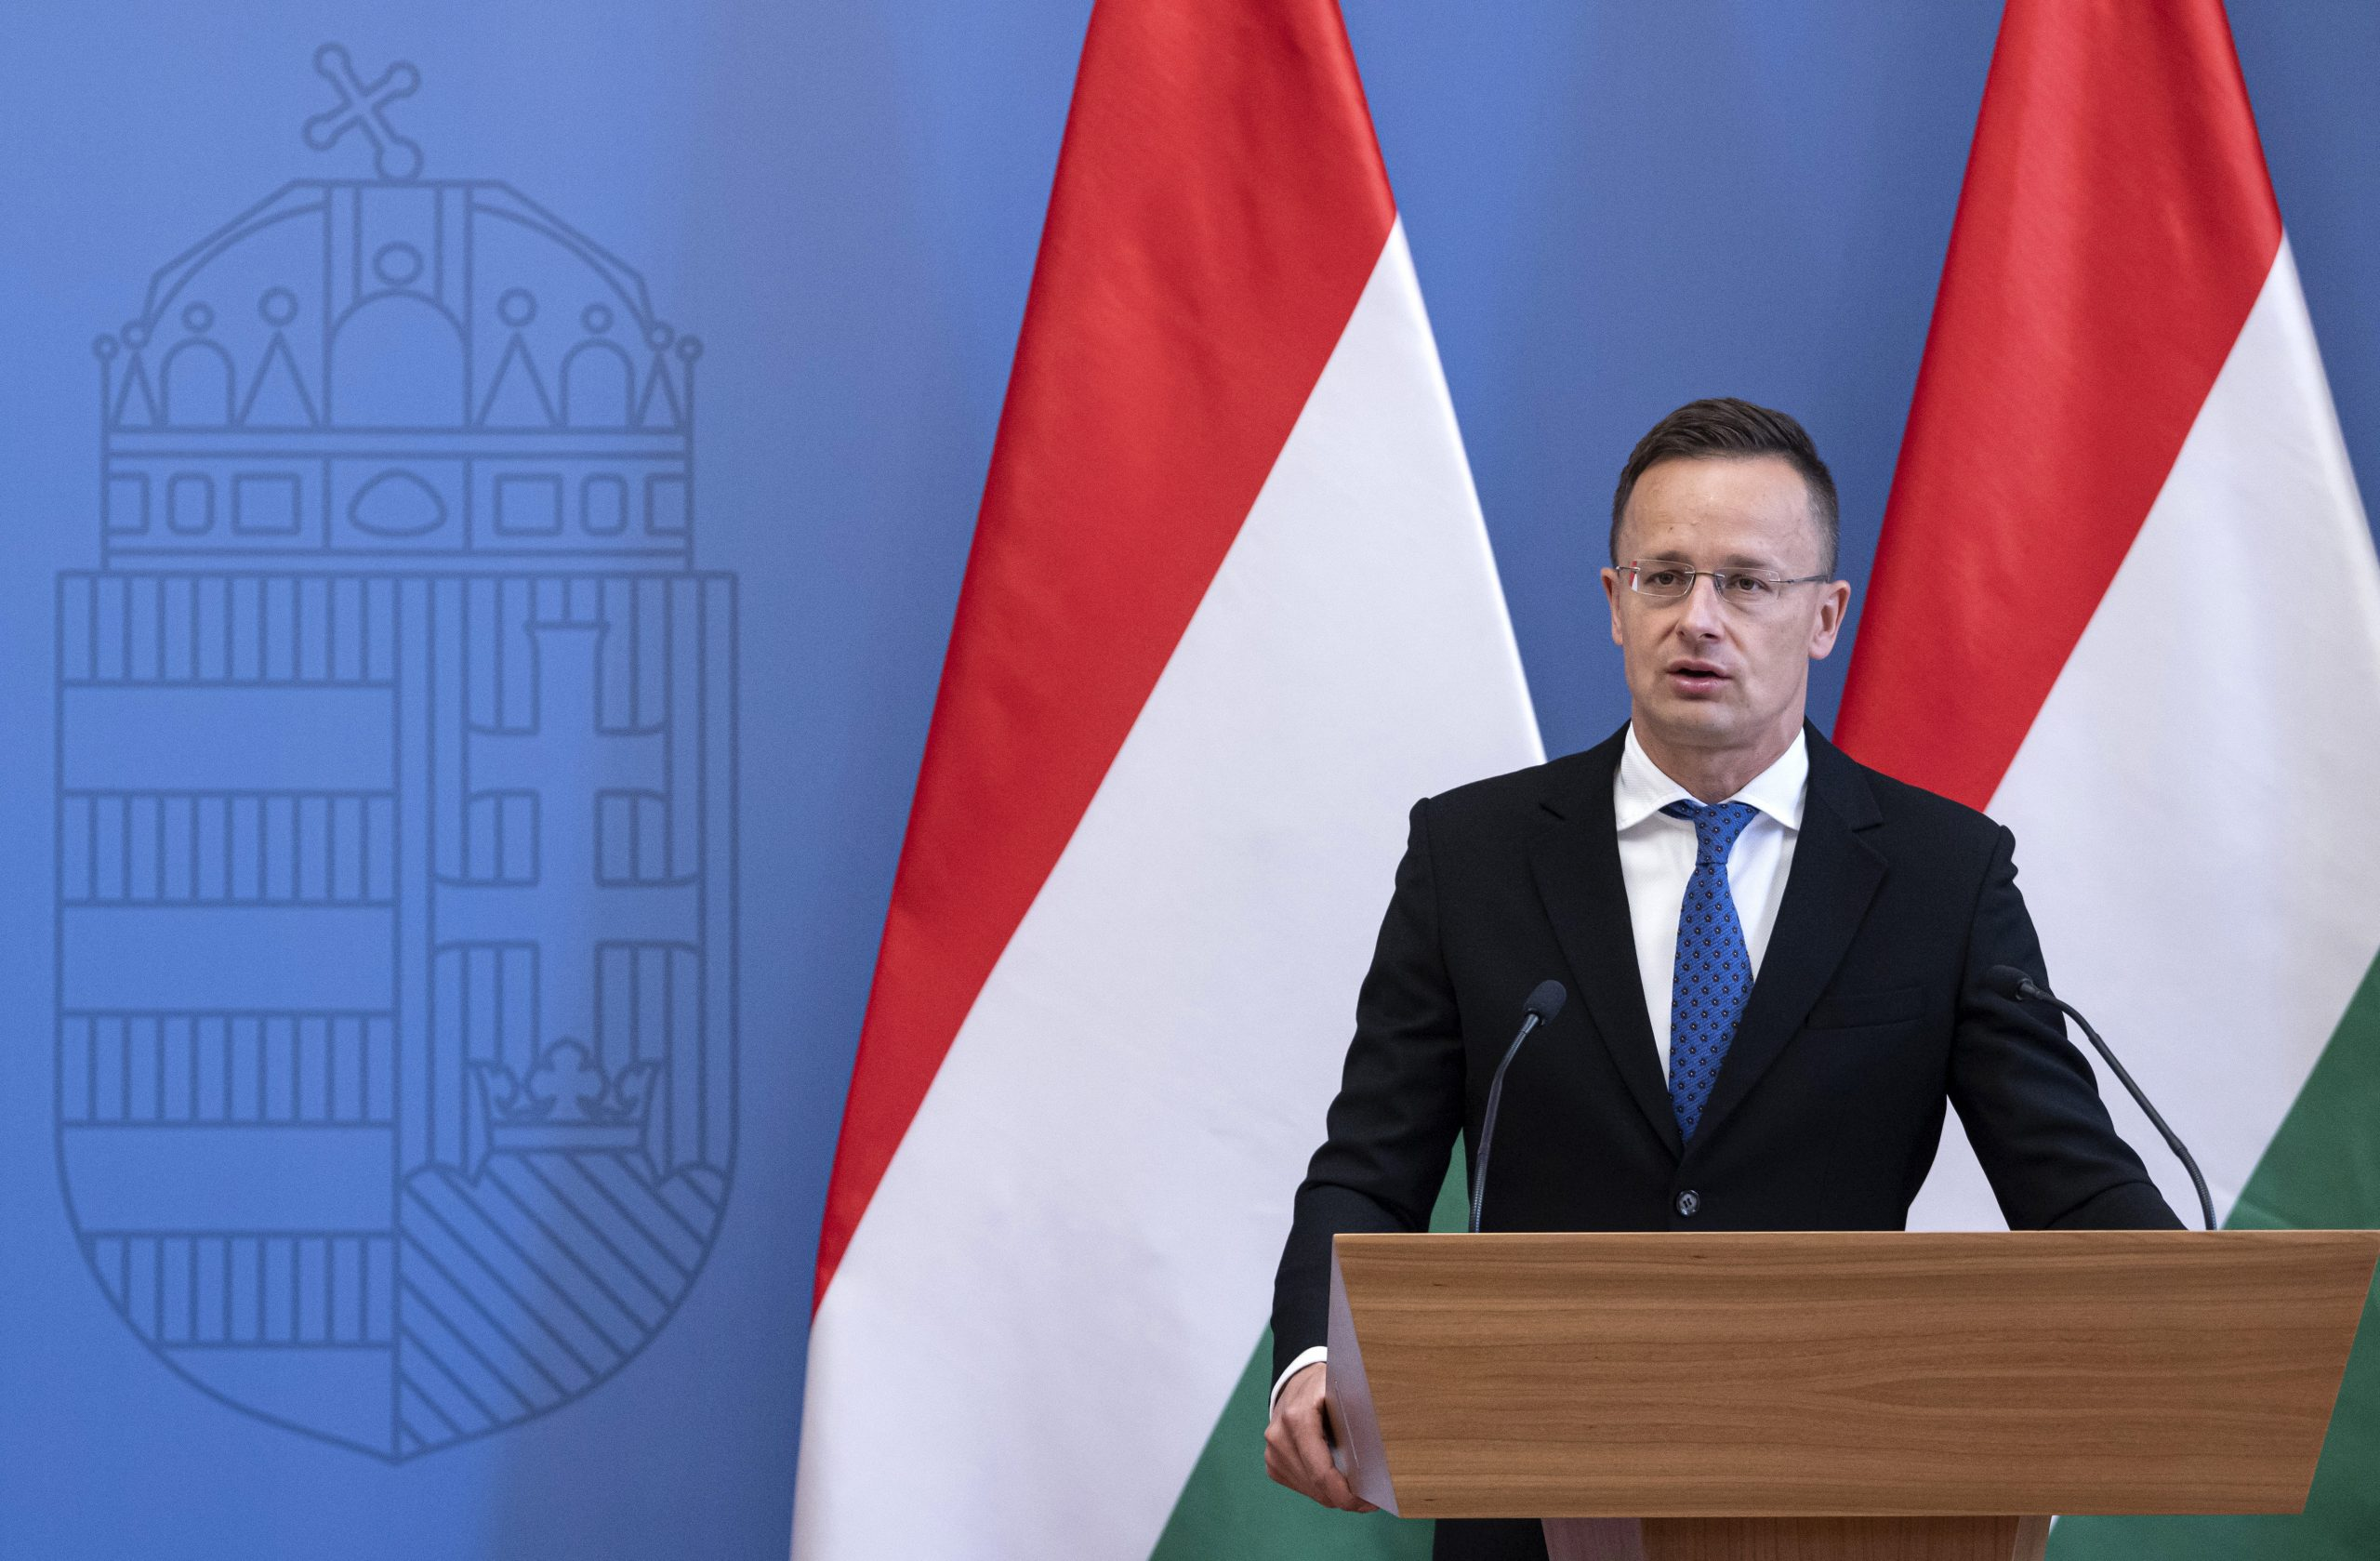 Szijjártó: Hungary, Israel 'Can Always Count on One Another'